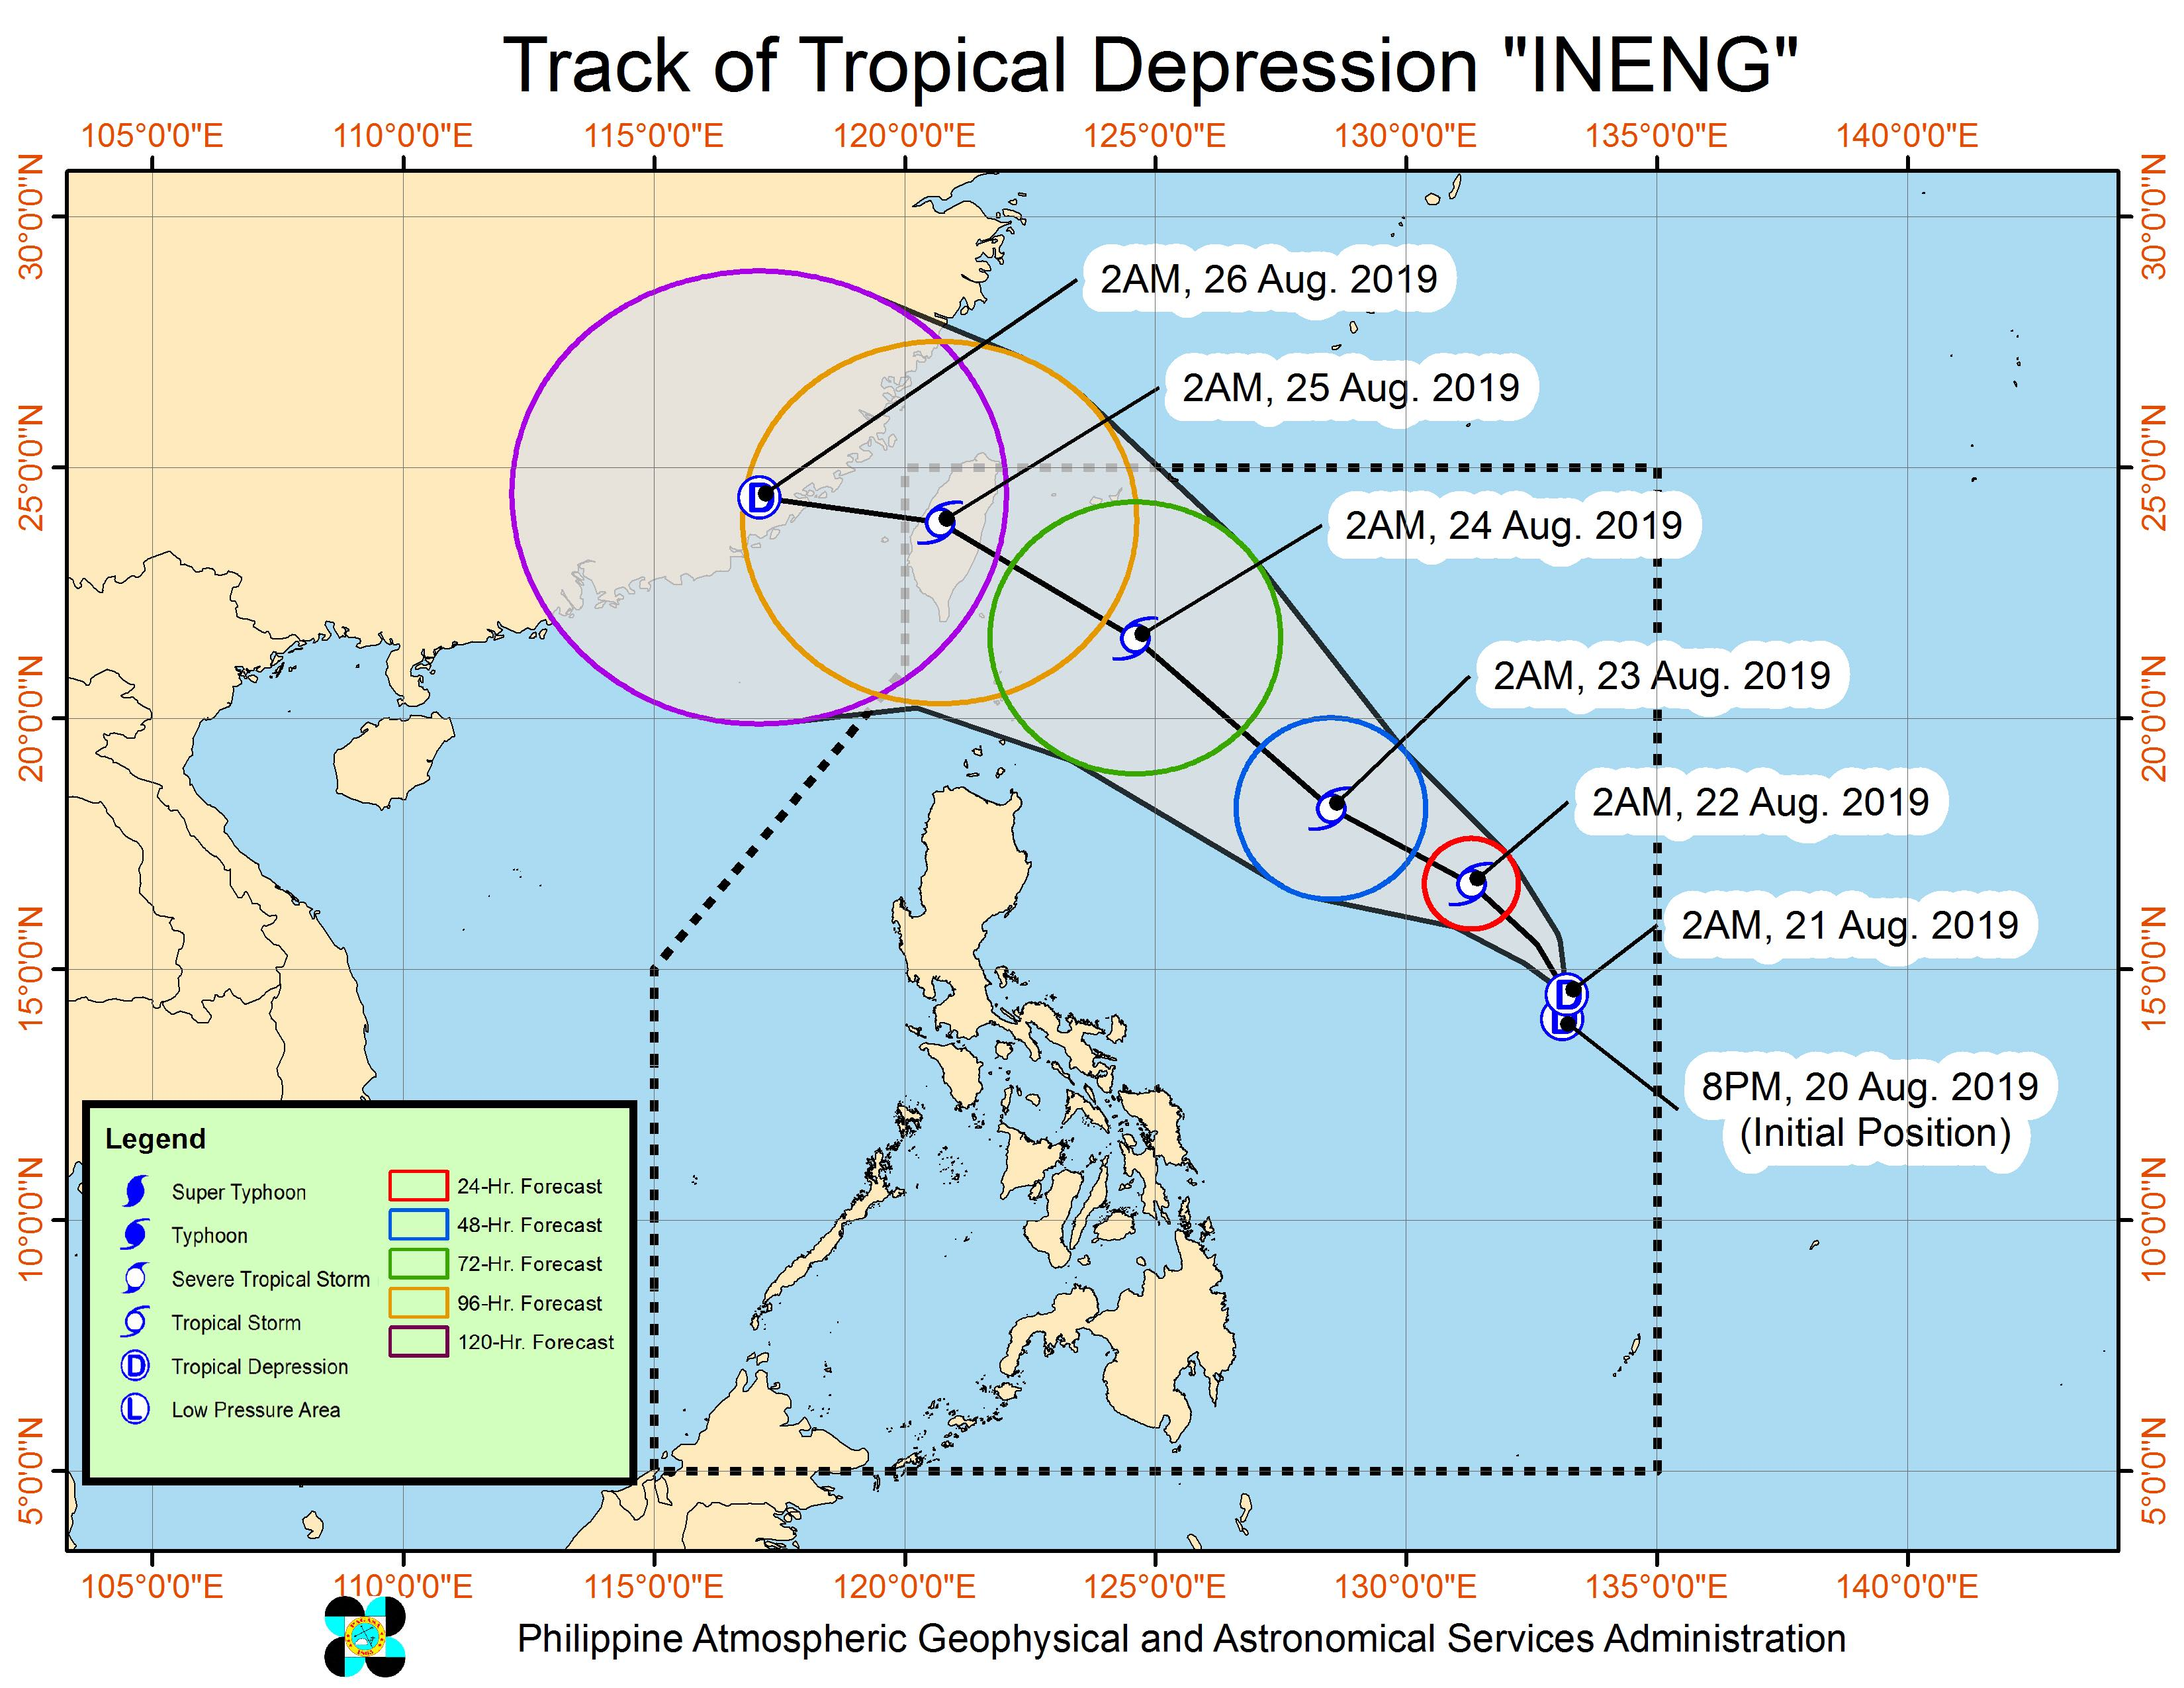 Forecast track of Tropical Depression Ineng as of August 21, 2019, 5 am. Image from PAGASA